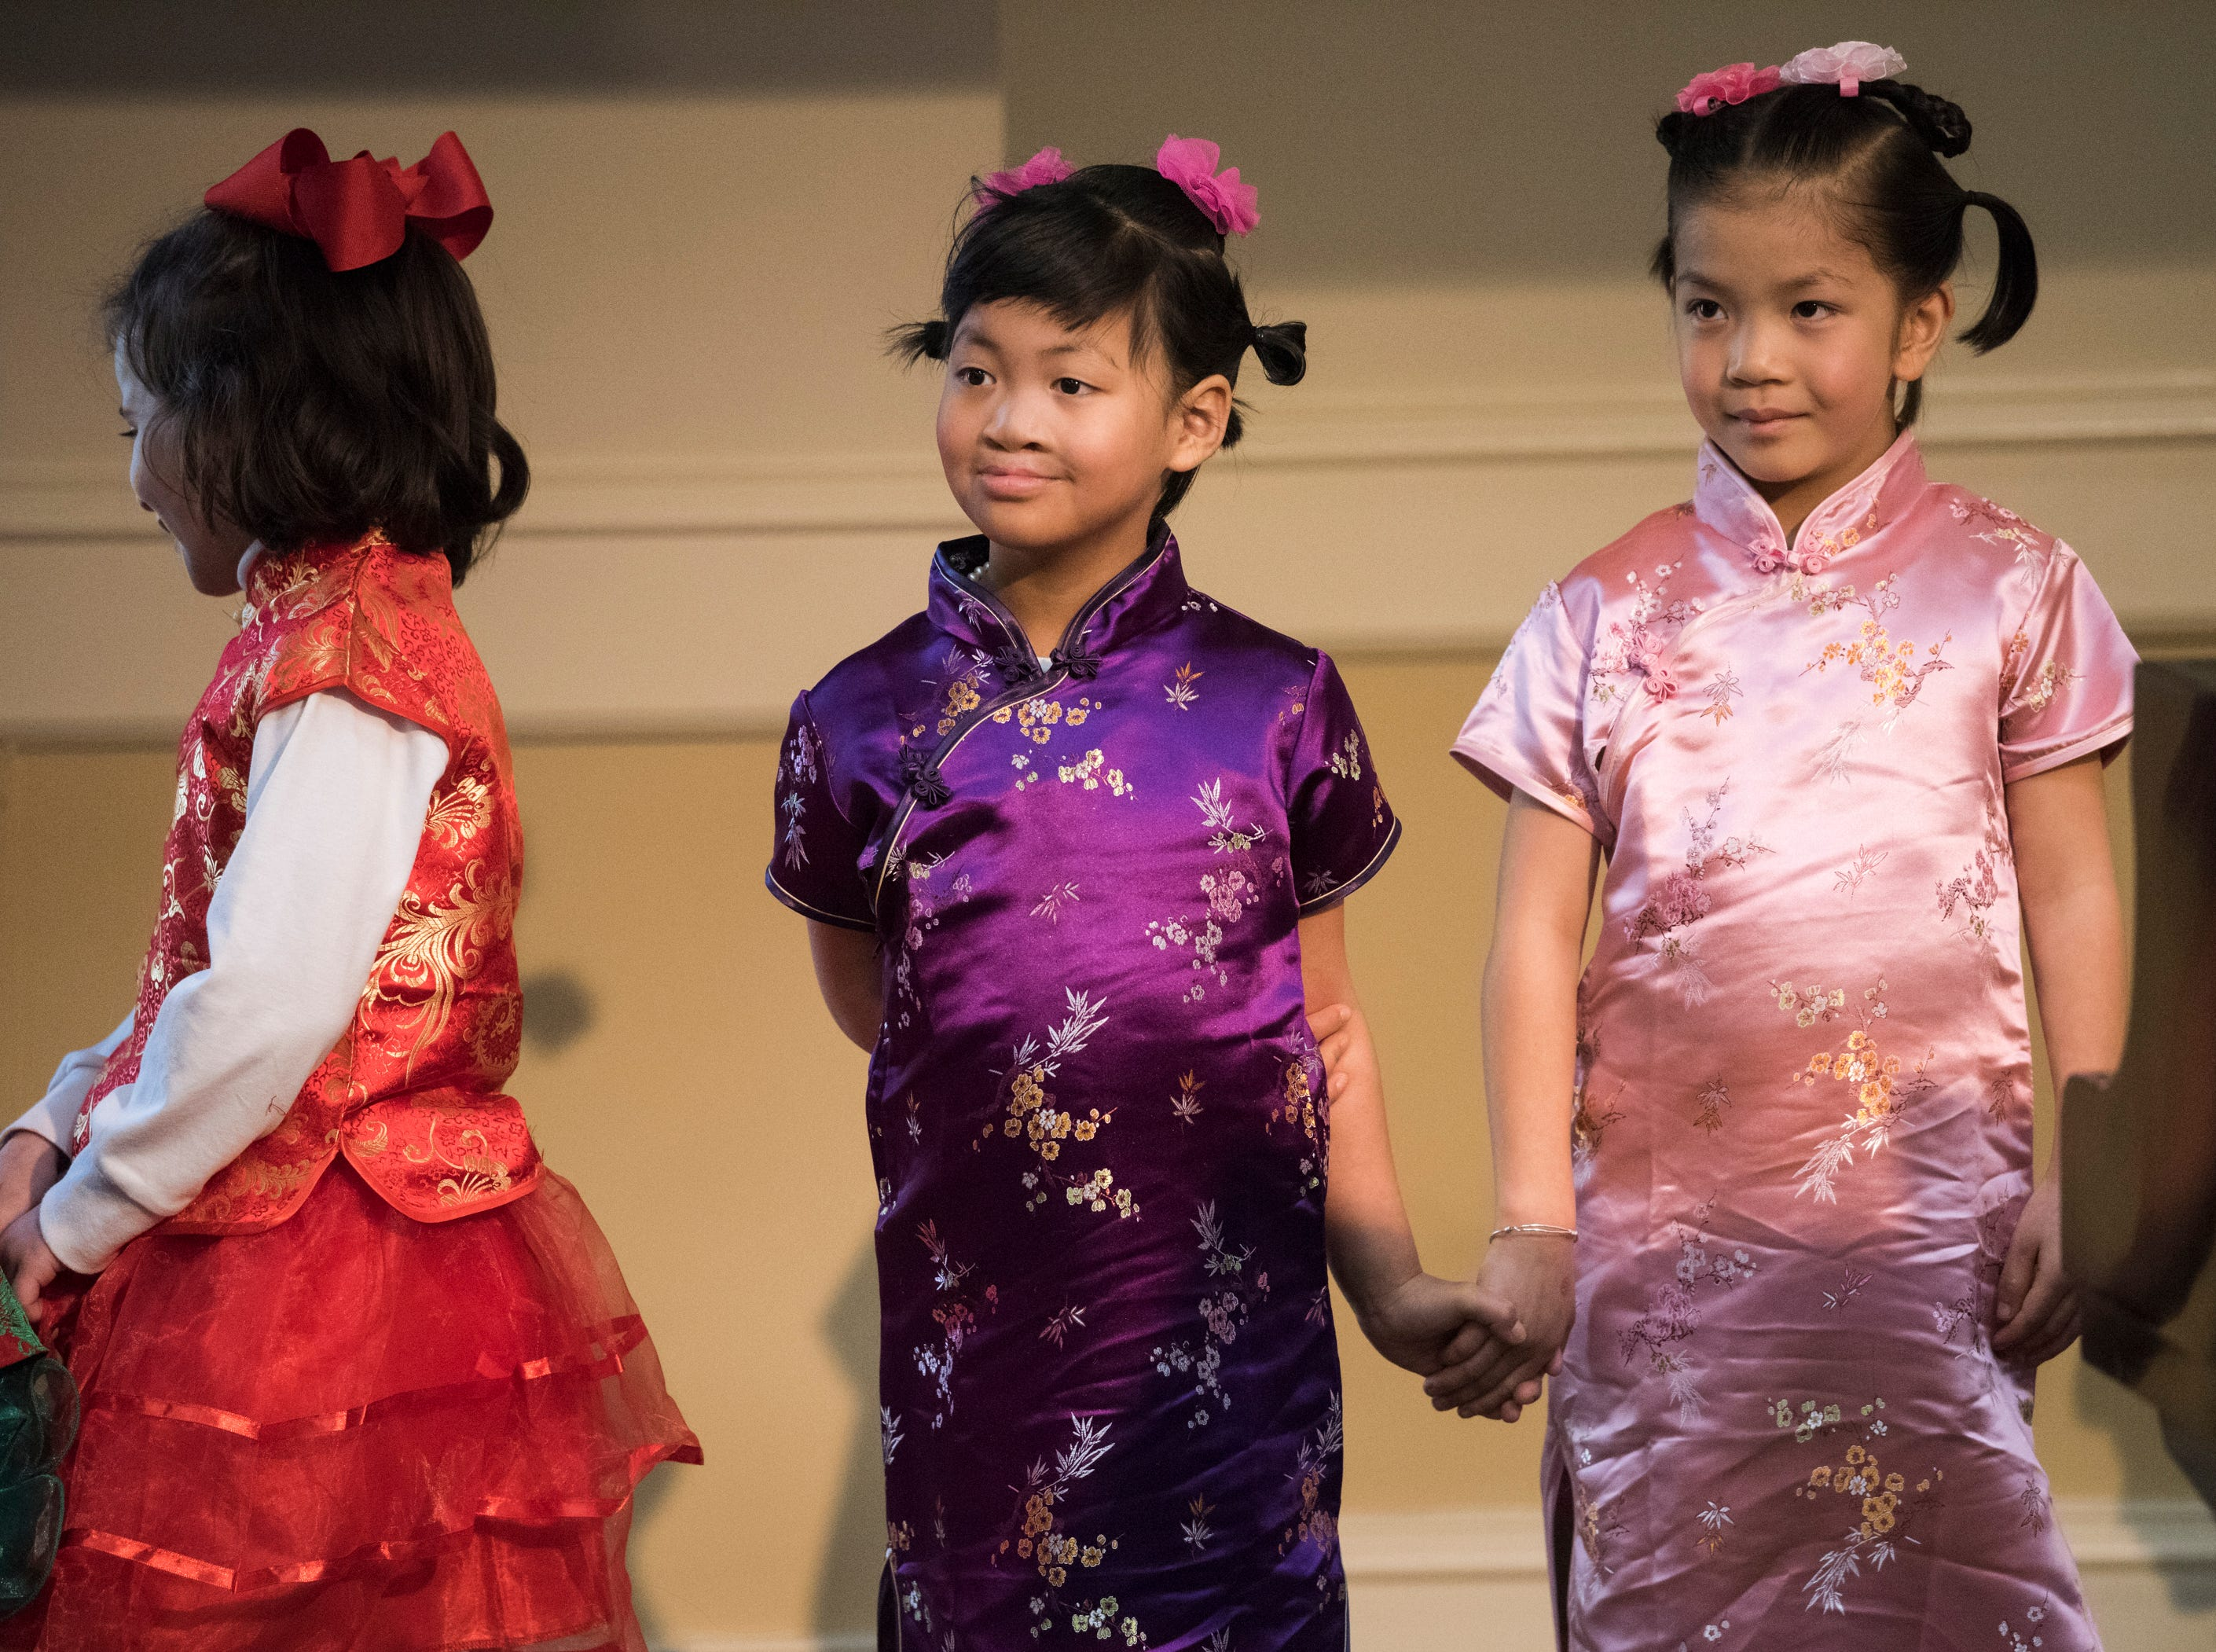 Flora Lin Adams, left, and her sister, Charlotte, both 6, hold hands as they wait to preform during the Central Alabama Association of Chinese 2019 Montgomery Chinese New Year festsival at Frazer Church in Montgomery, Ala., on Saturday, Feb. 9, 2019.